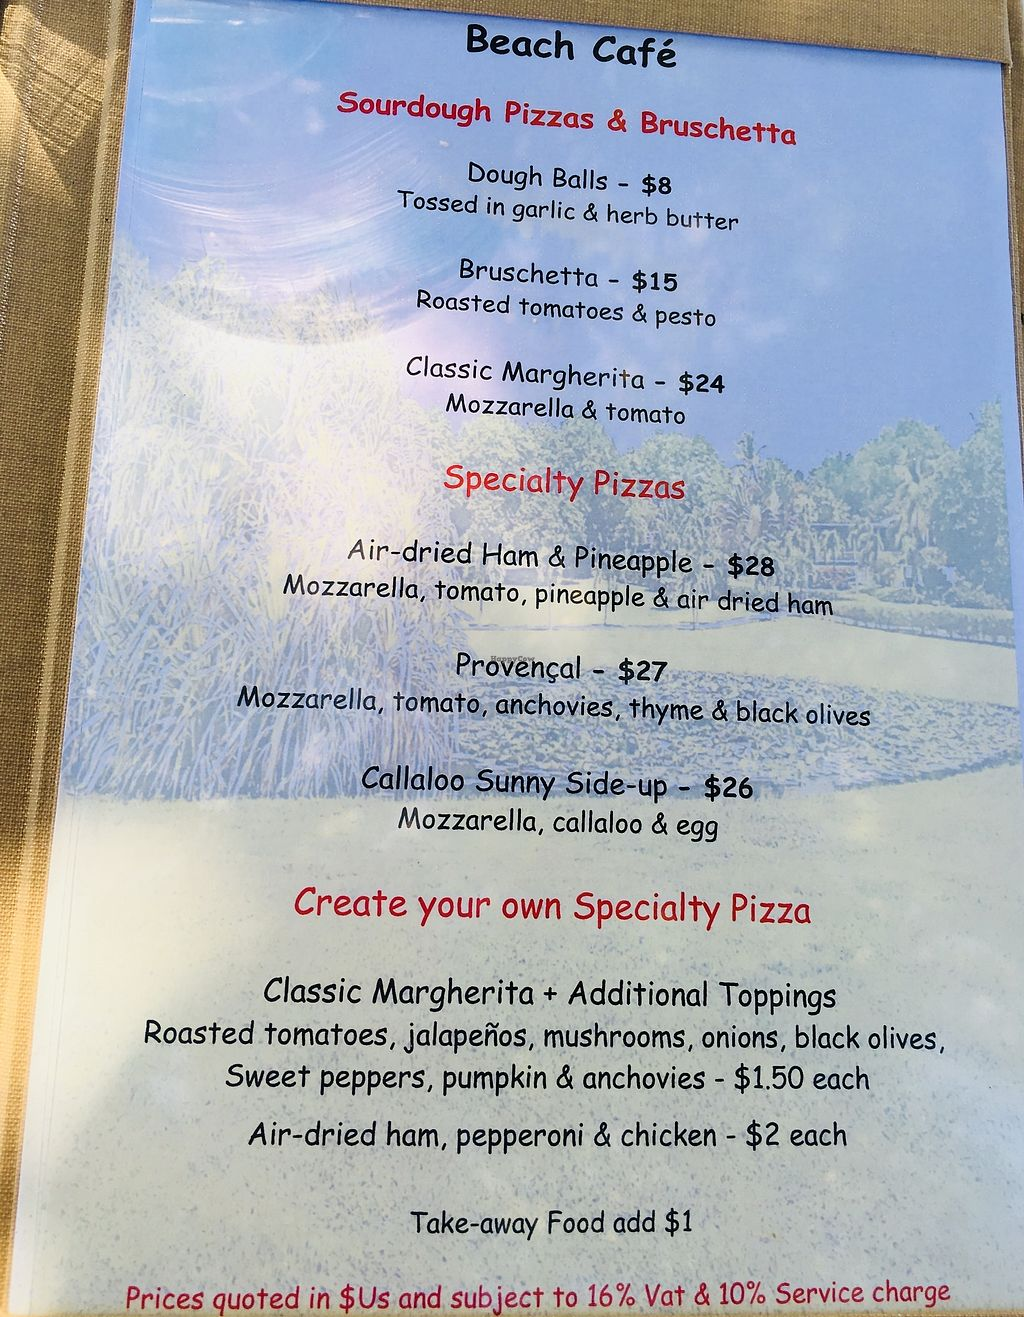 """Photo of Cotton House Beach Cafe  by <a href=""""/members/profile/veganmom"""">veganmom</a> <br/>Pizza Menu <br/> November 22, 2017  - <a href='/contact/abuse/image/105673/328126'>Report</a>"""